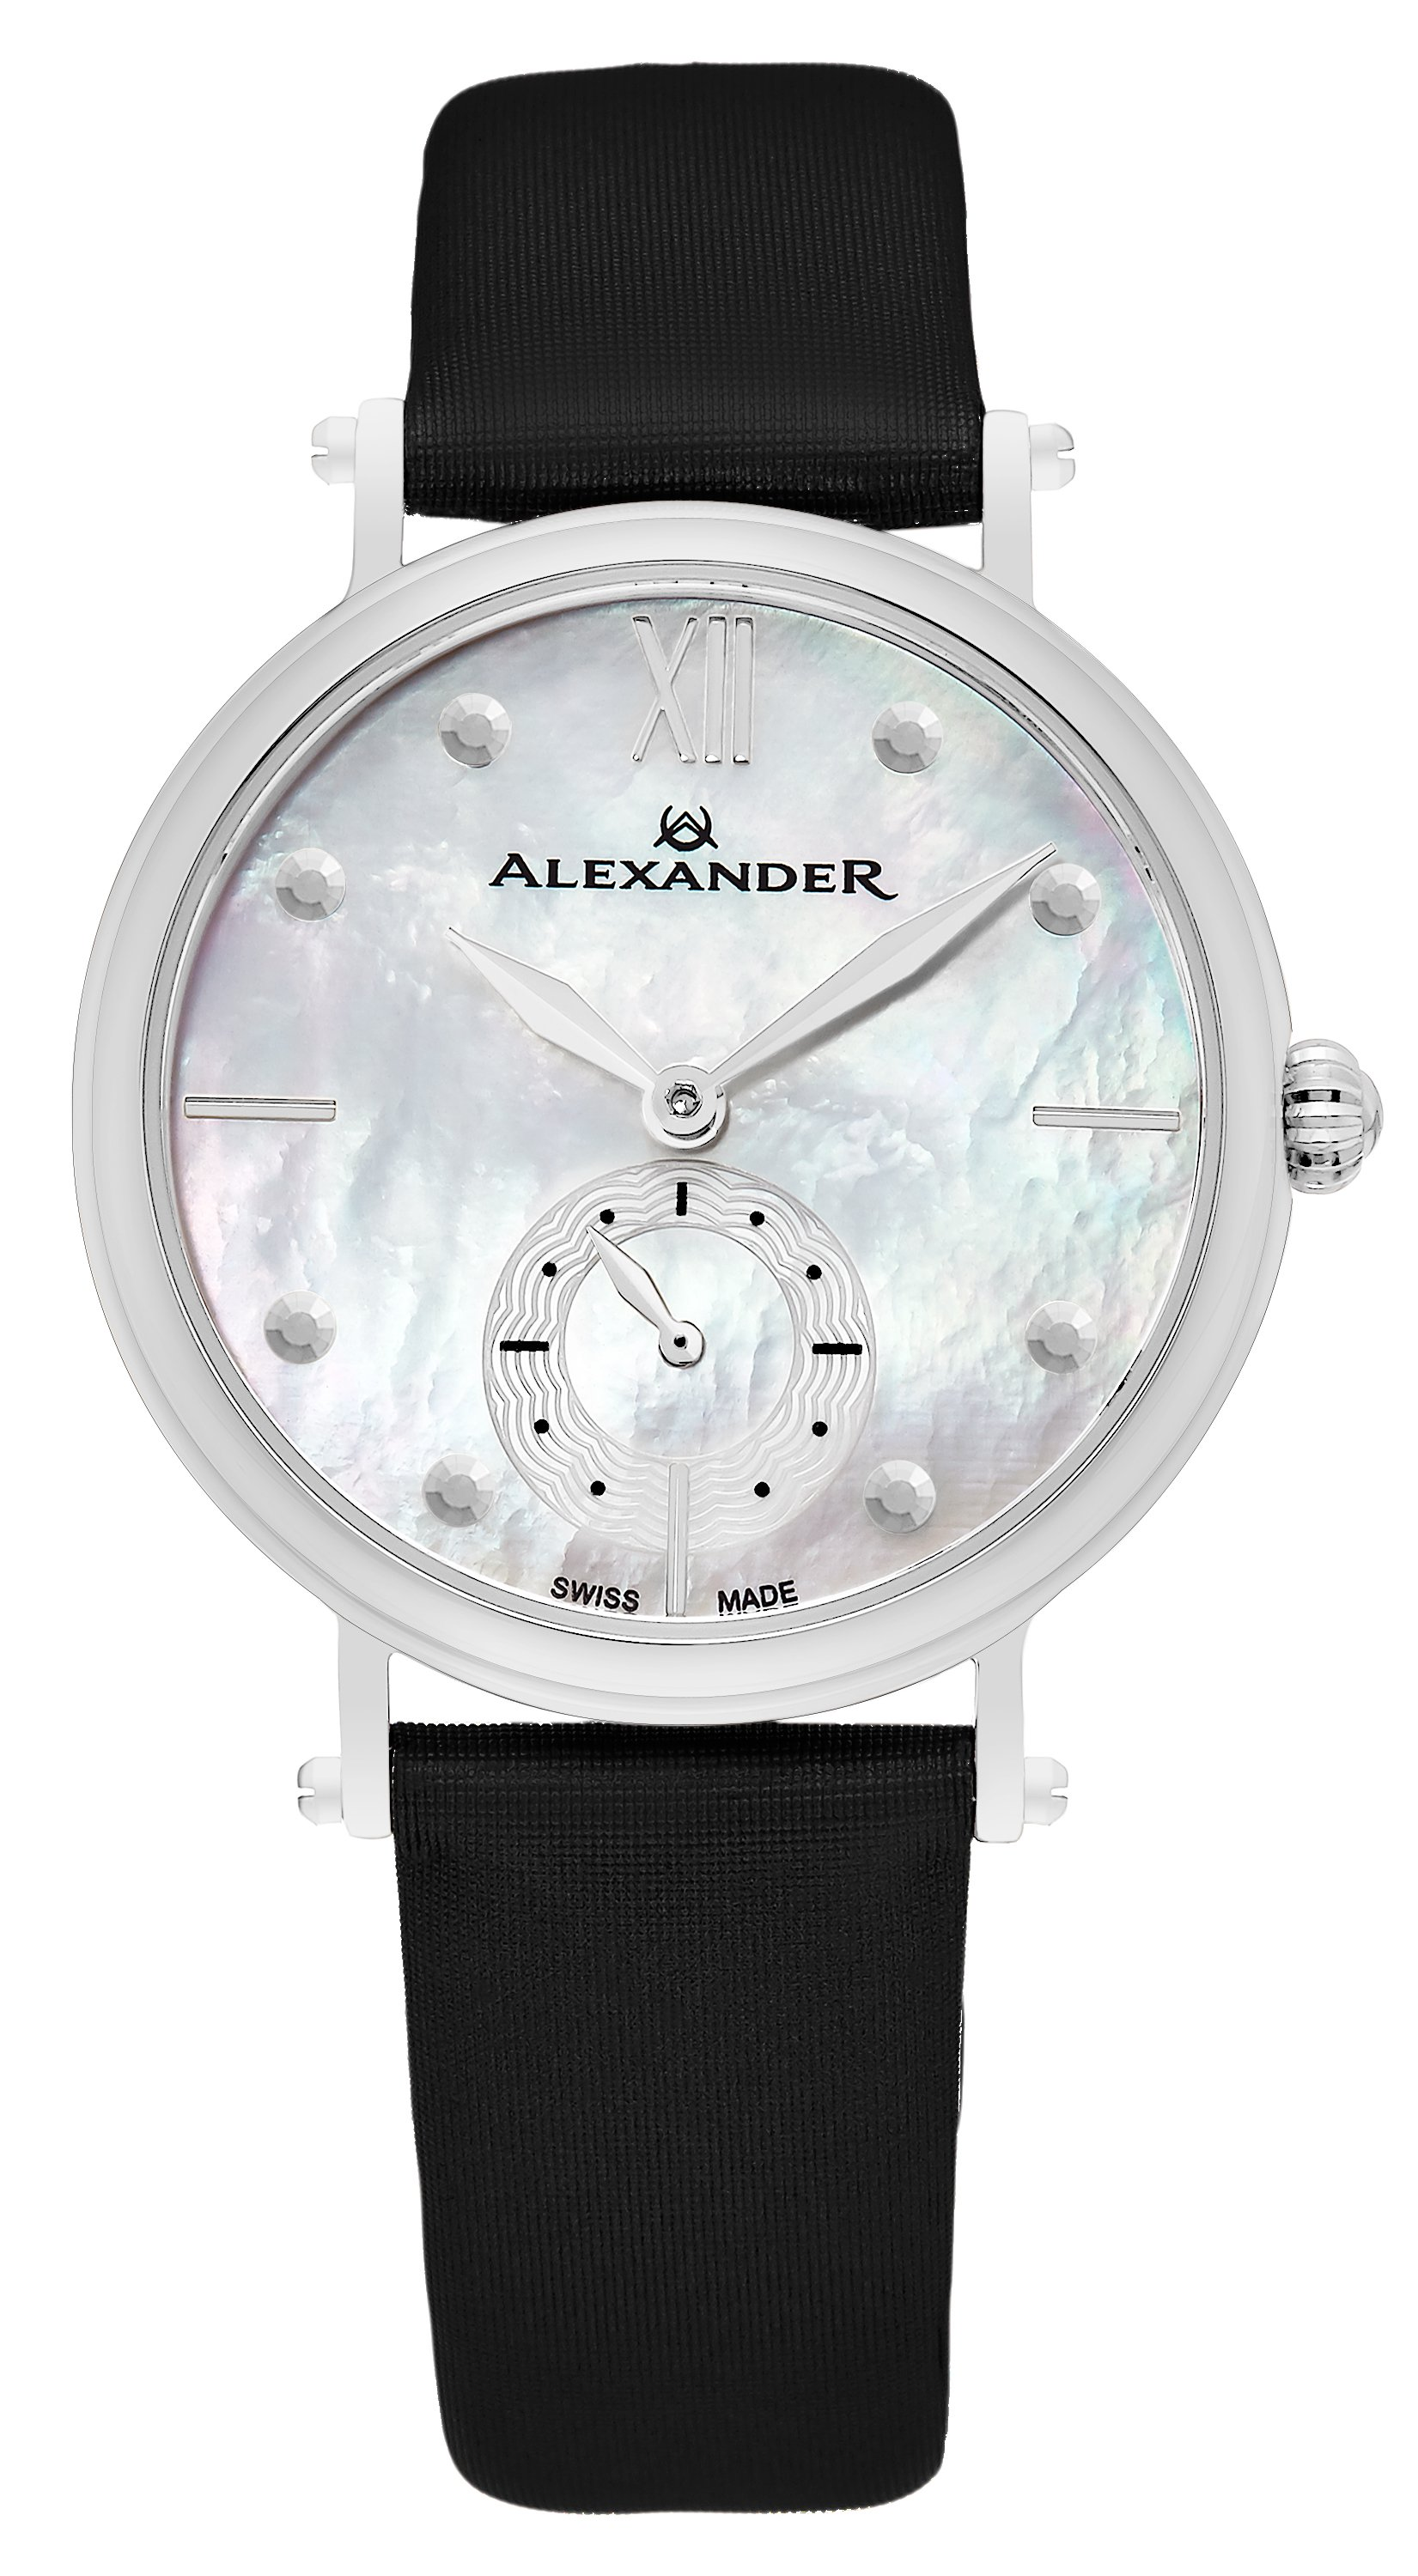 Alexander Monarch Dameklokke A201-01 Hvit/Sateng Ø34 mm - Alexander